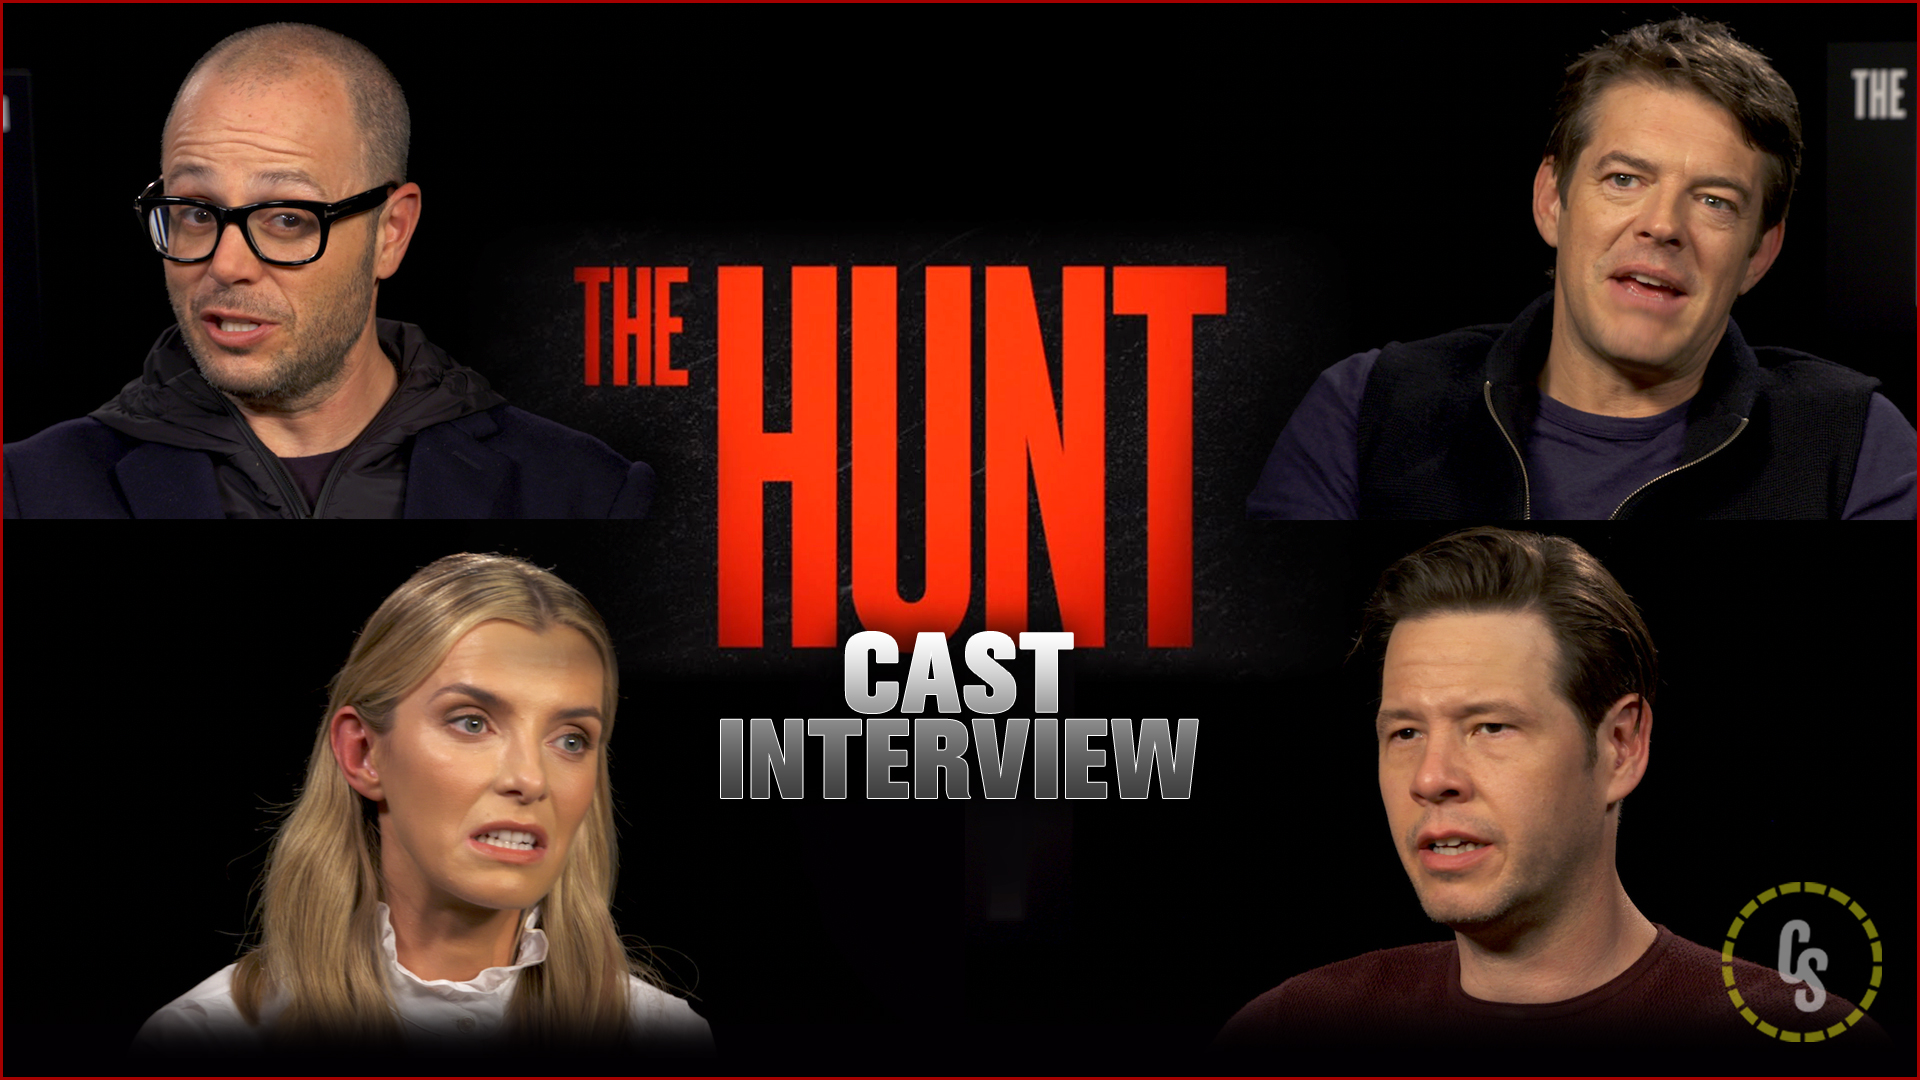 CS Video: The Hunt